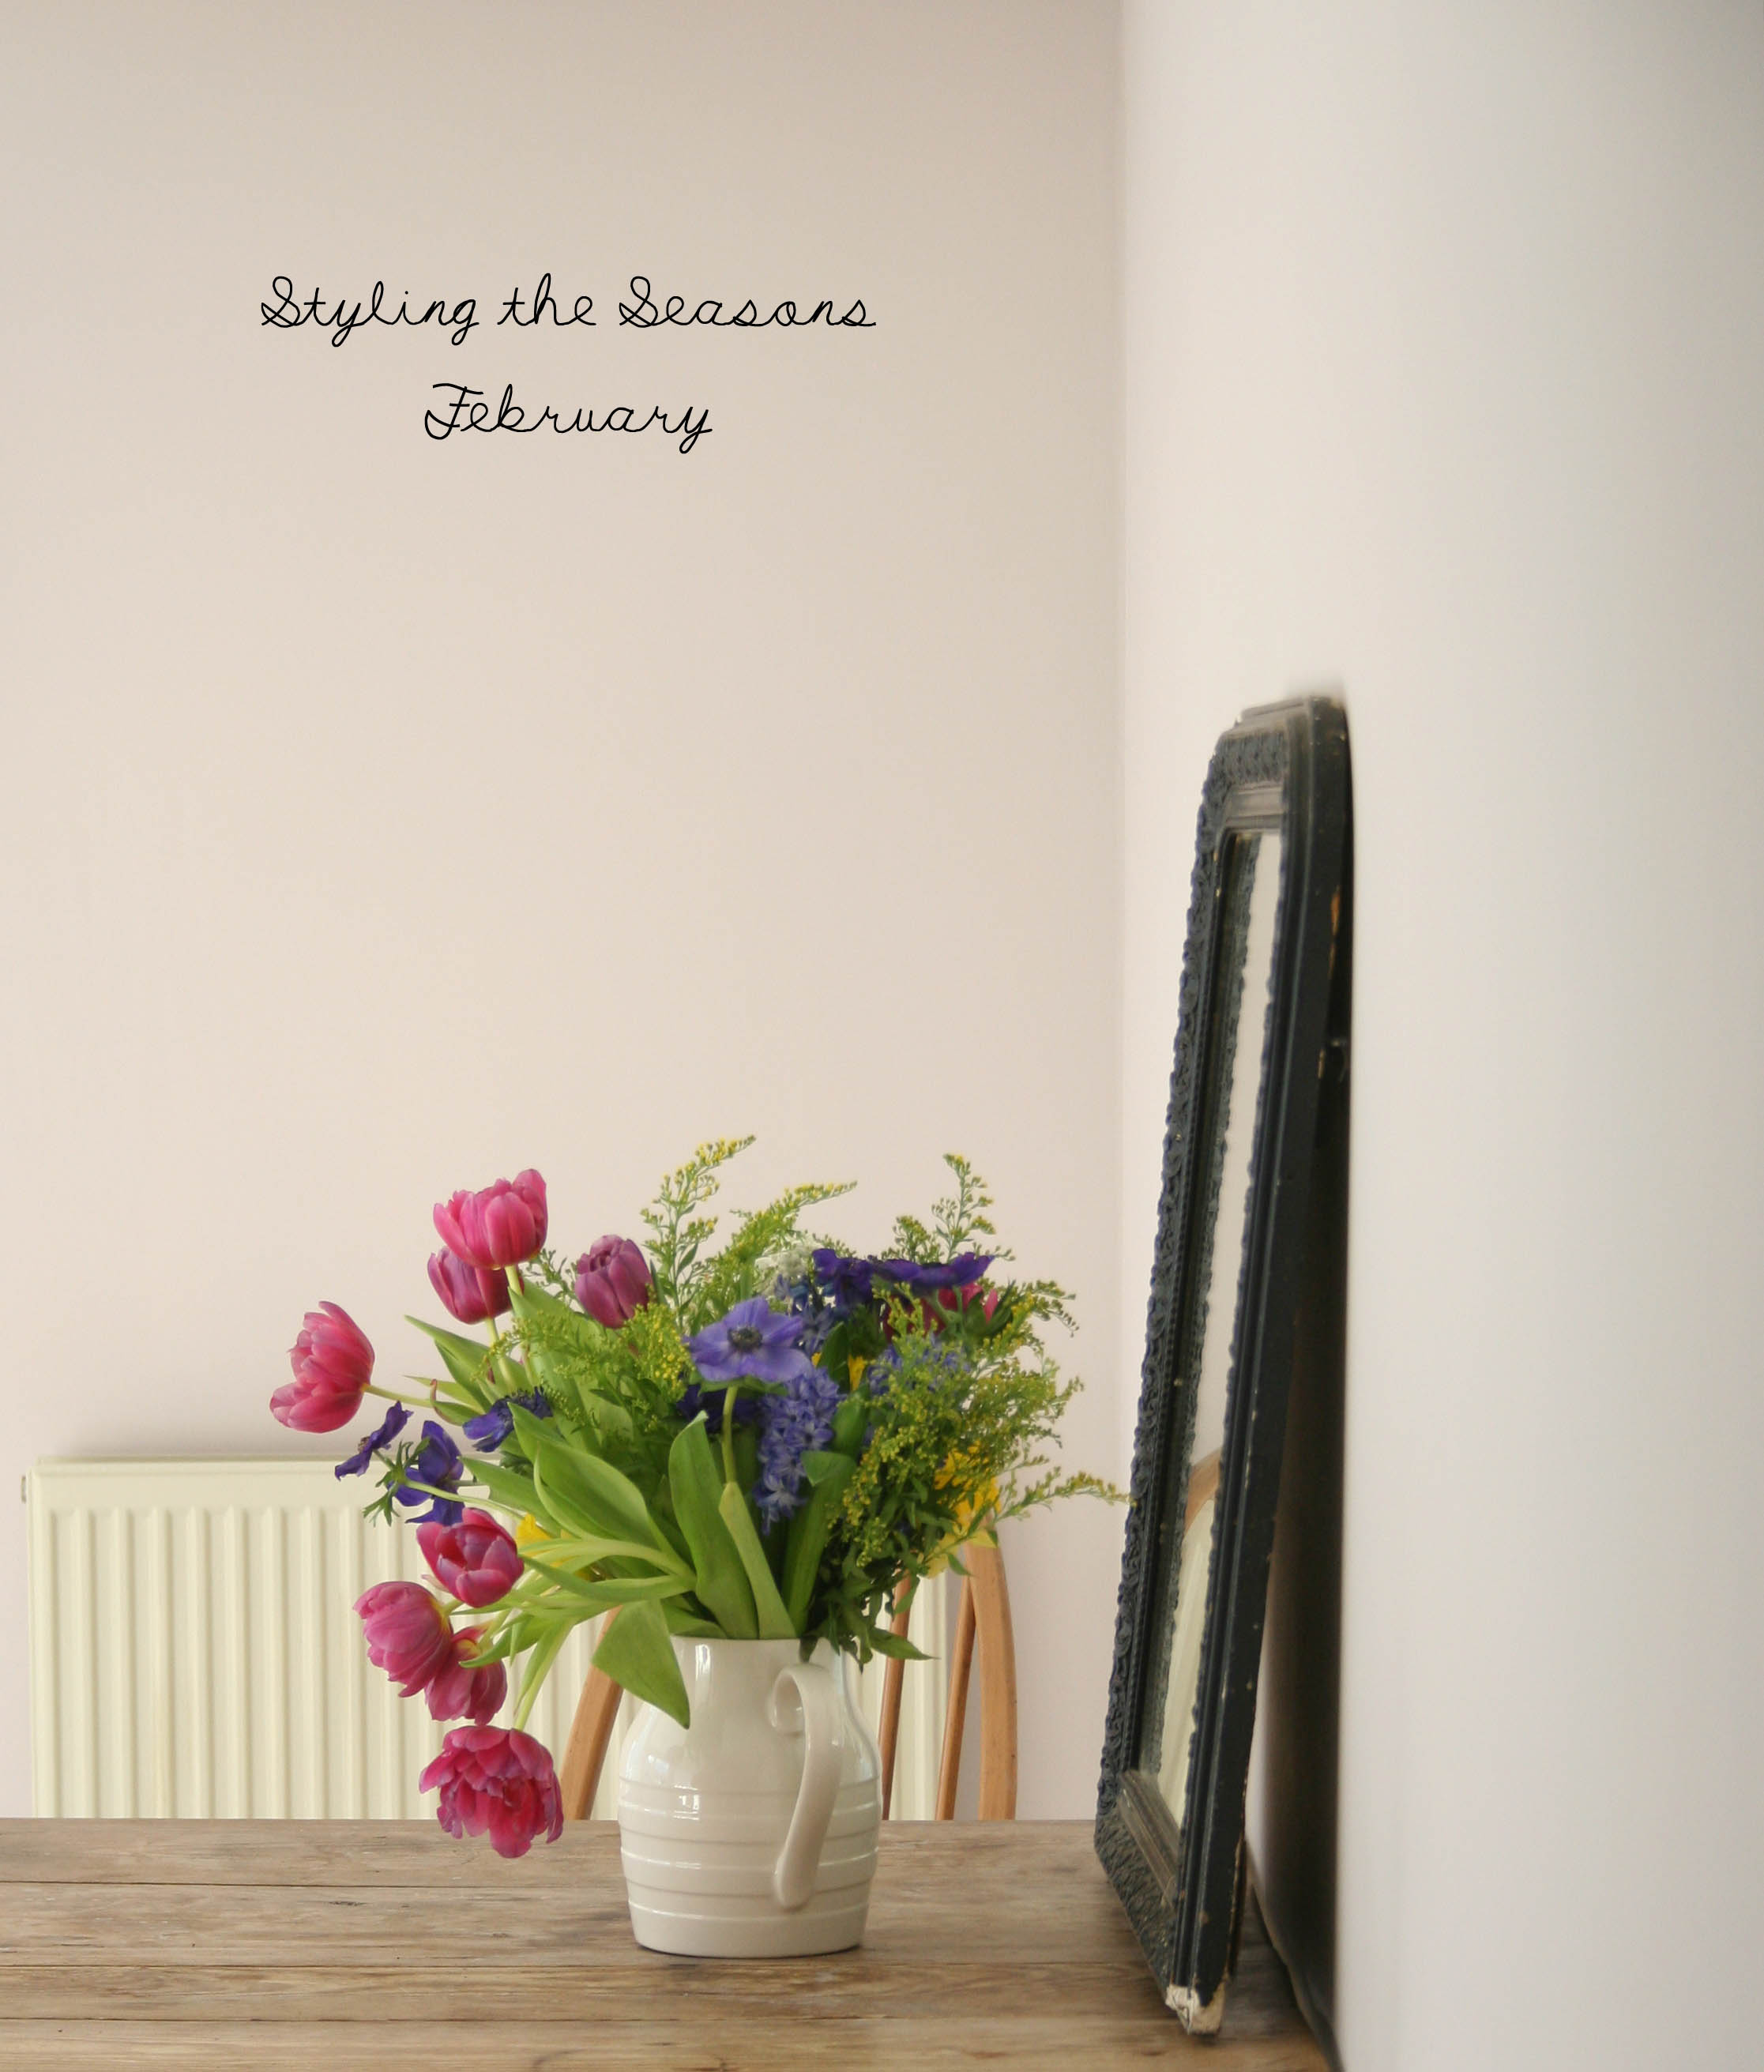 Styling the Seasons - February | New Farrow & Ball colour - Peignoir | Apartment Apothecary